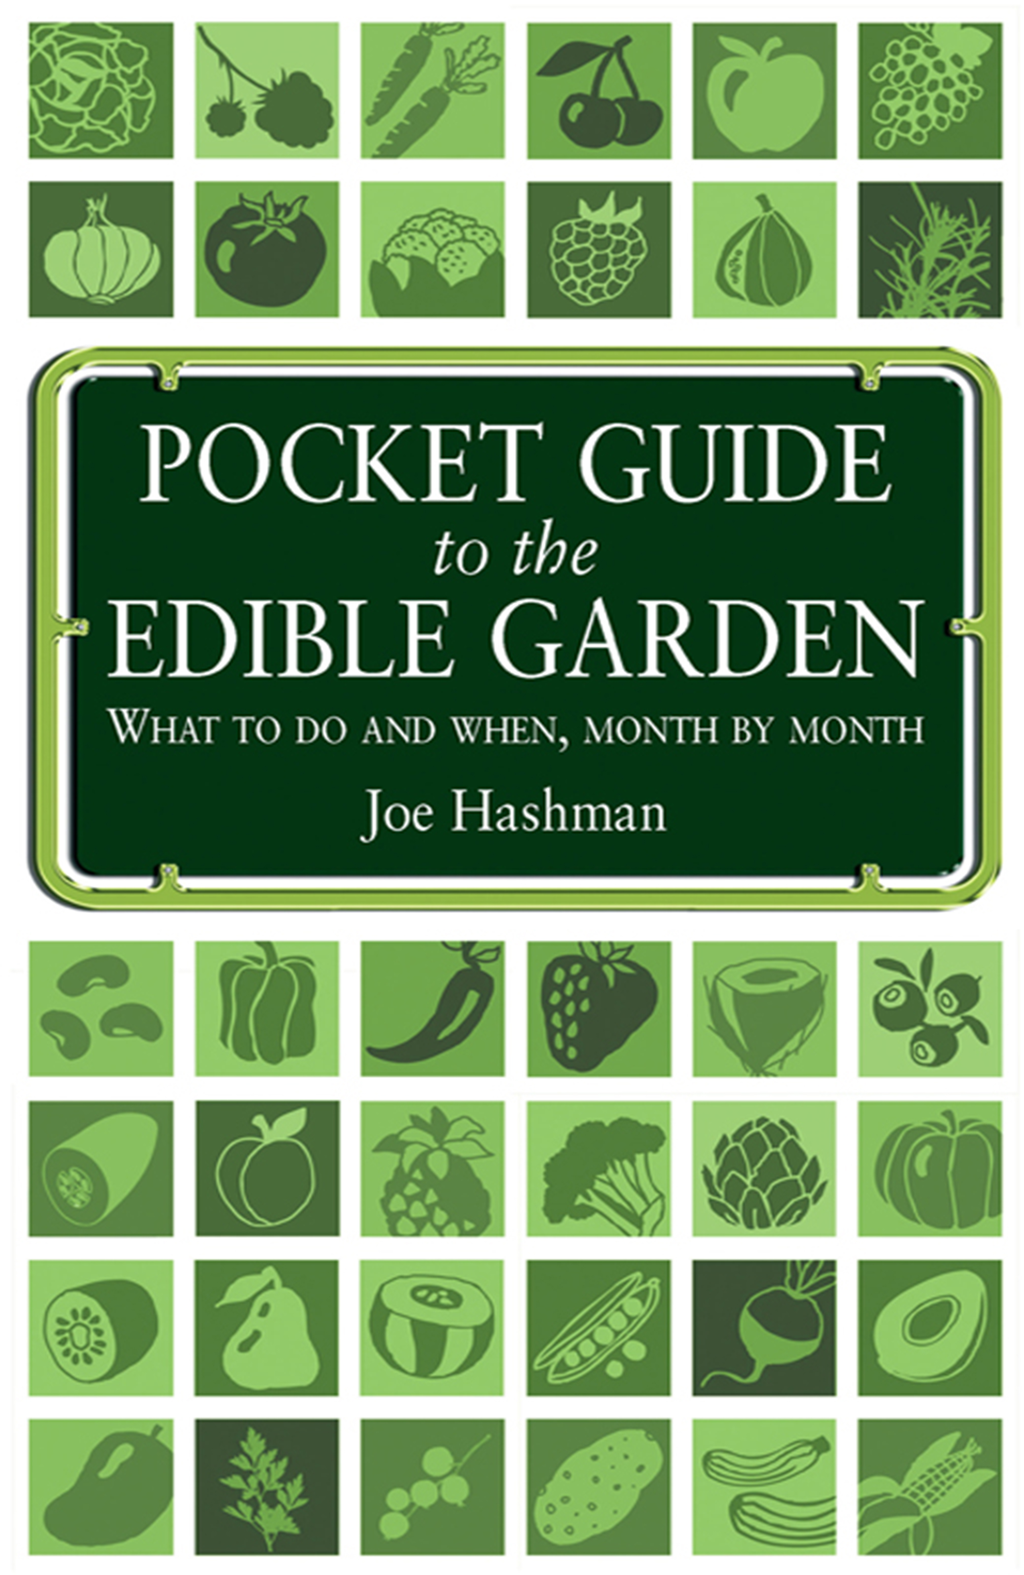 Pocket Guide To The Edible Garden What to do and when,  month by month